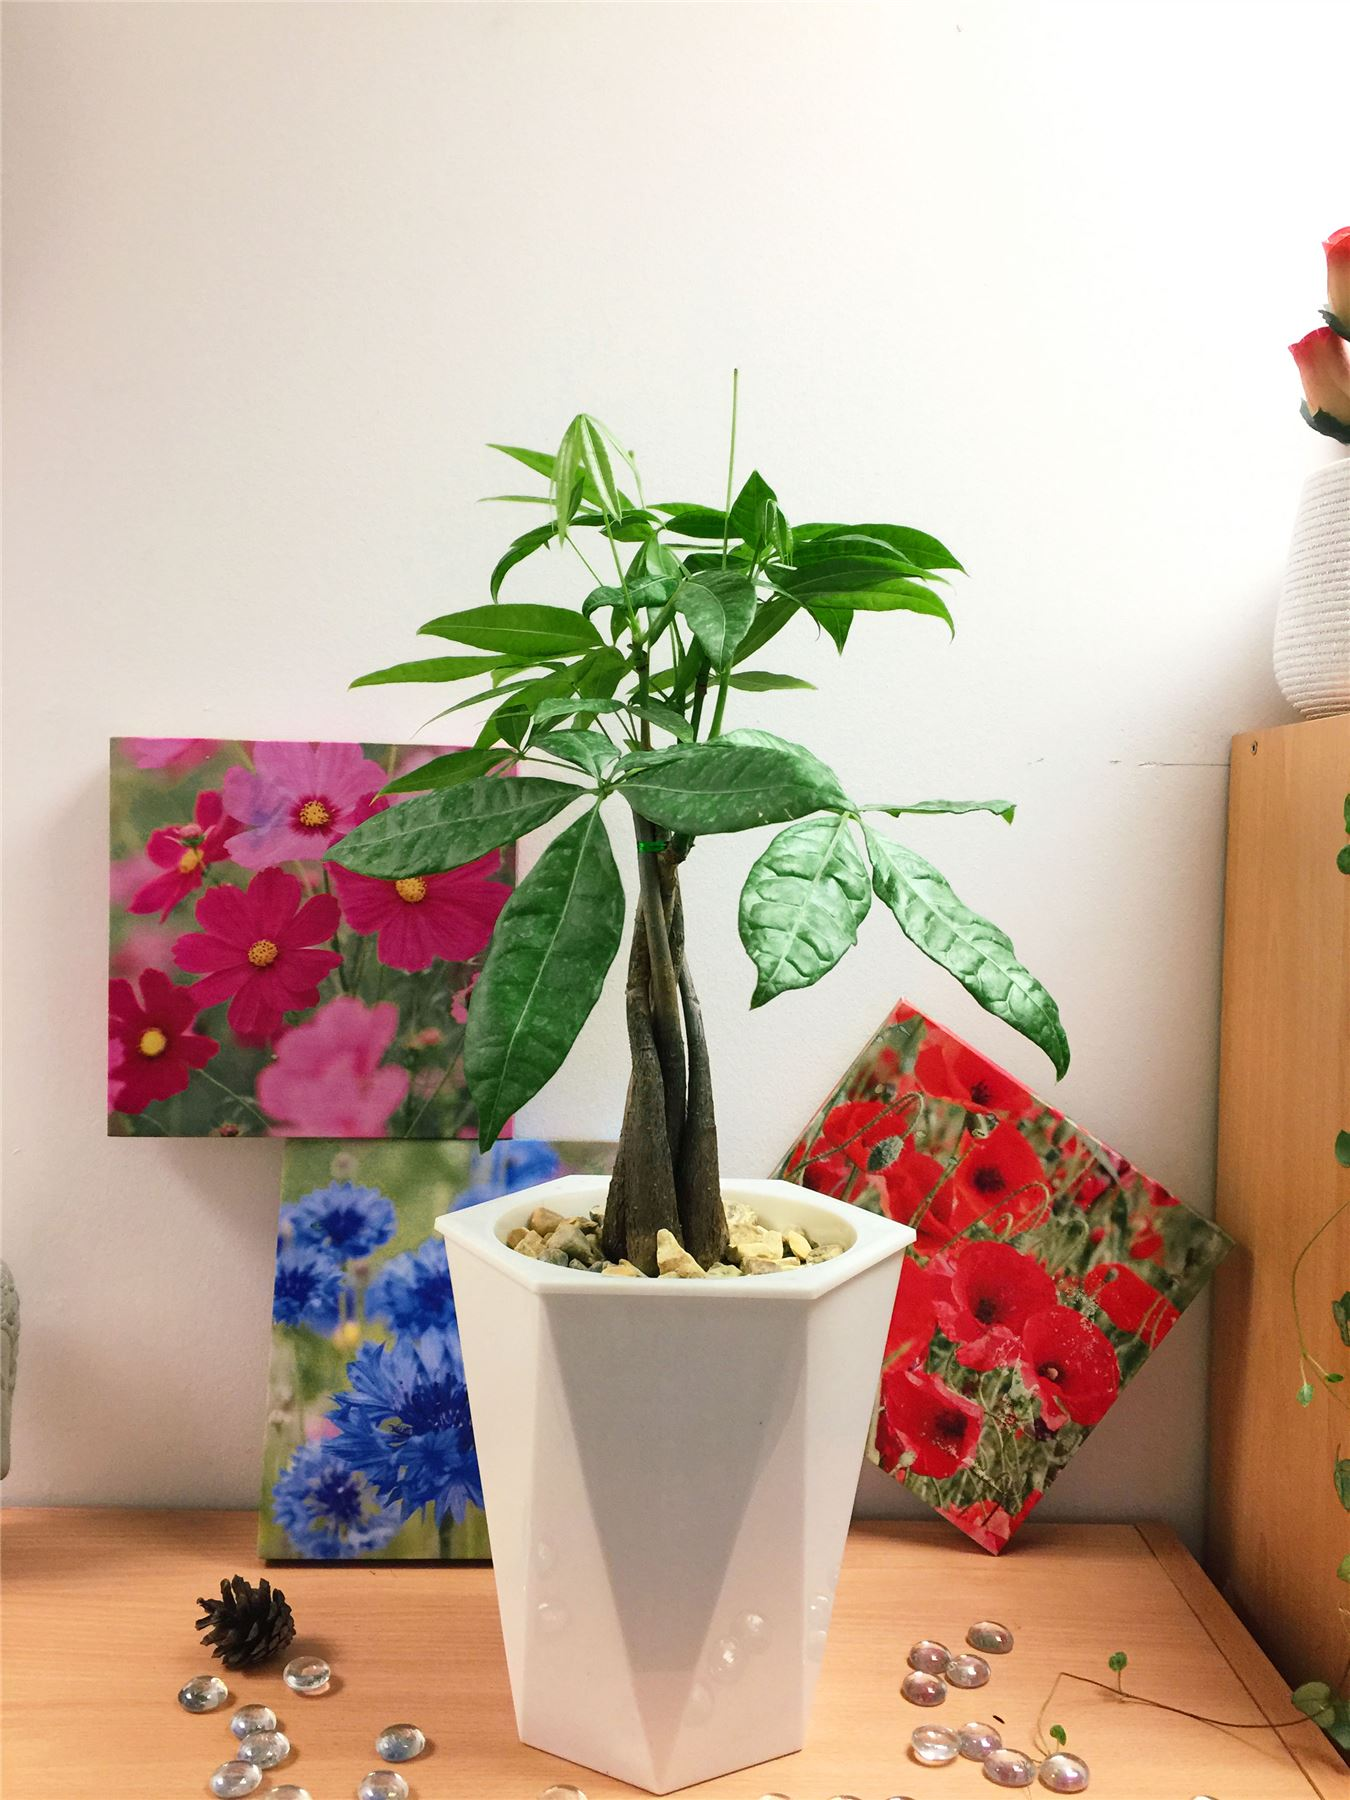 Details about Money Tree Pachira Fortune House Plant @ White Rhombus Self  Watering Pot Topping